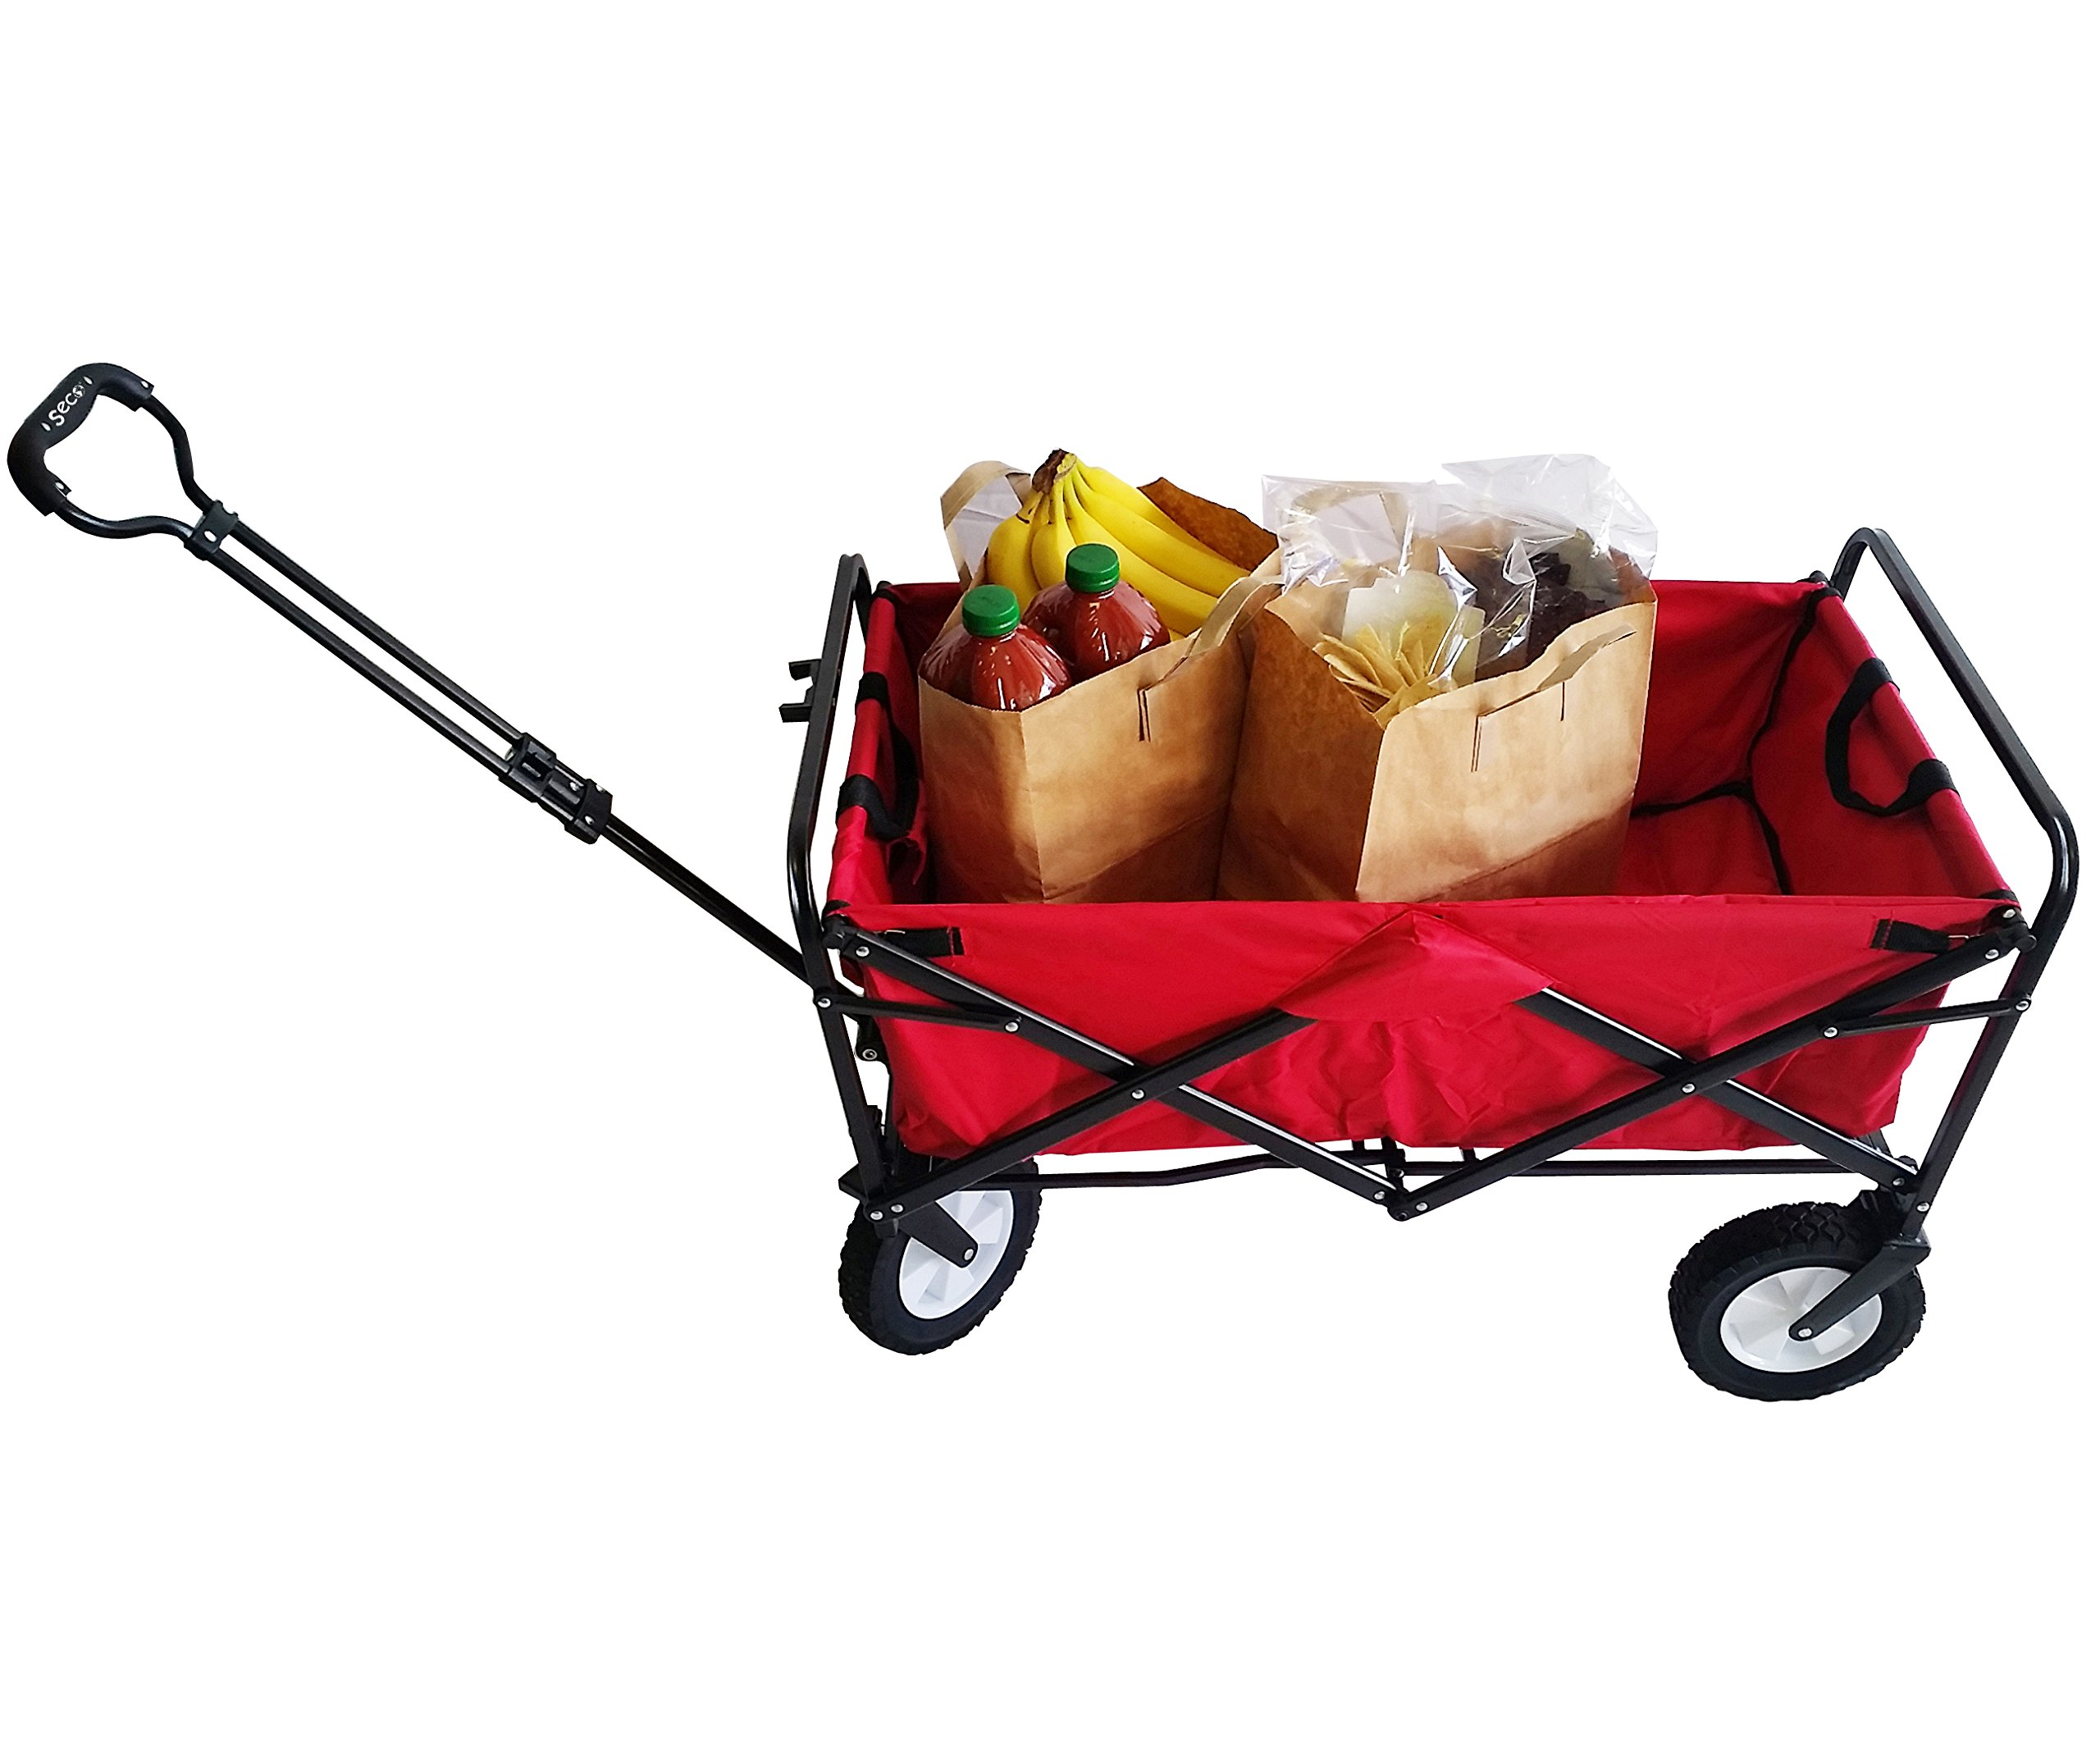 SSECO YZ8037 SECO Heavy Duty Folding Utility Wagon Garden Cart